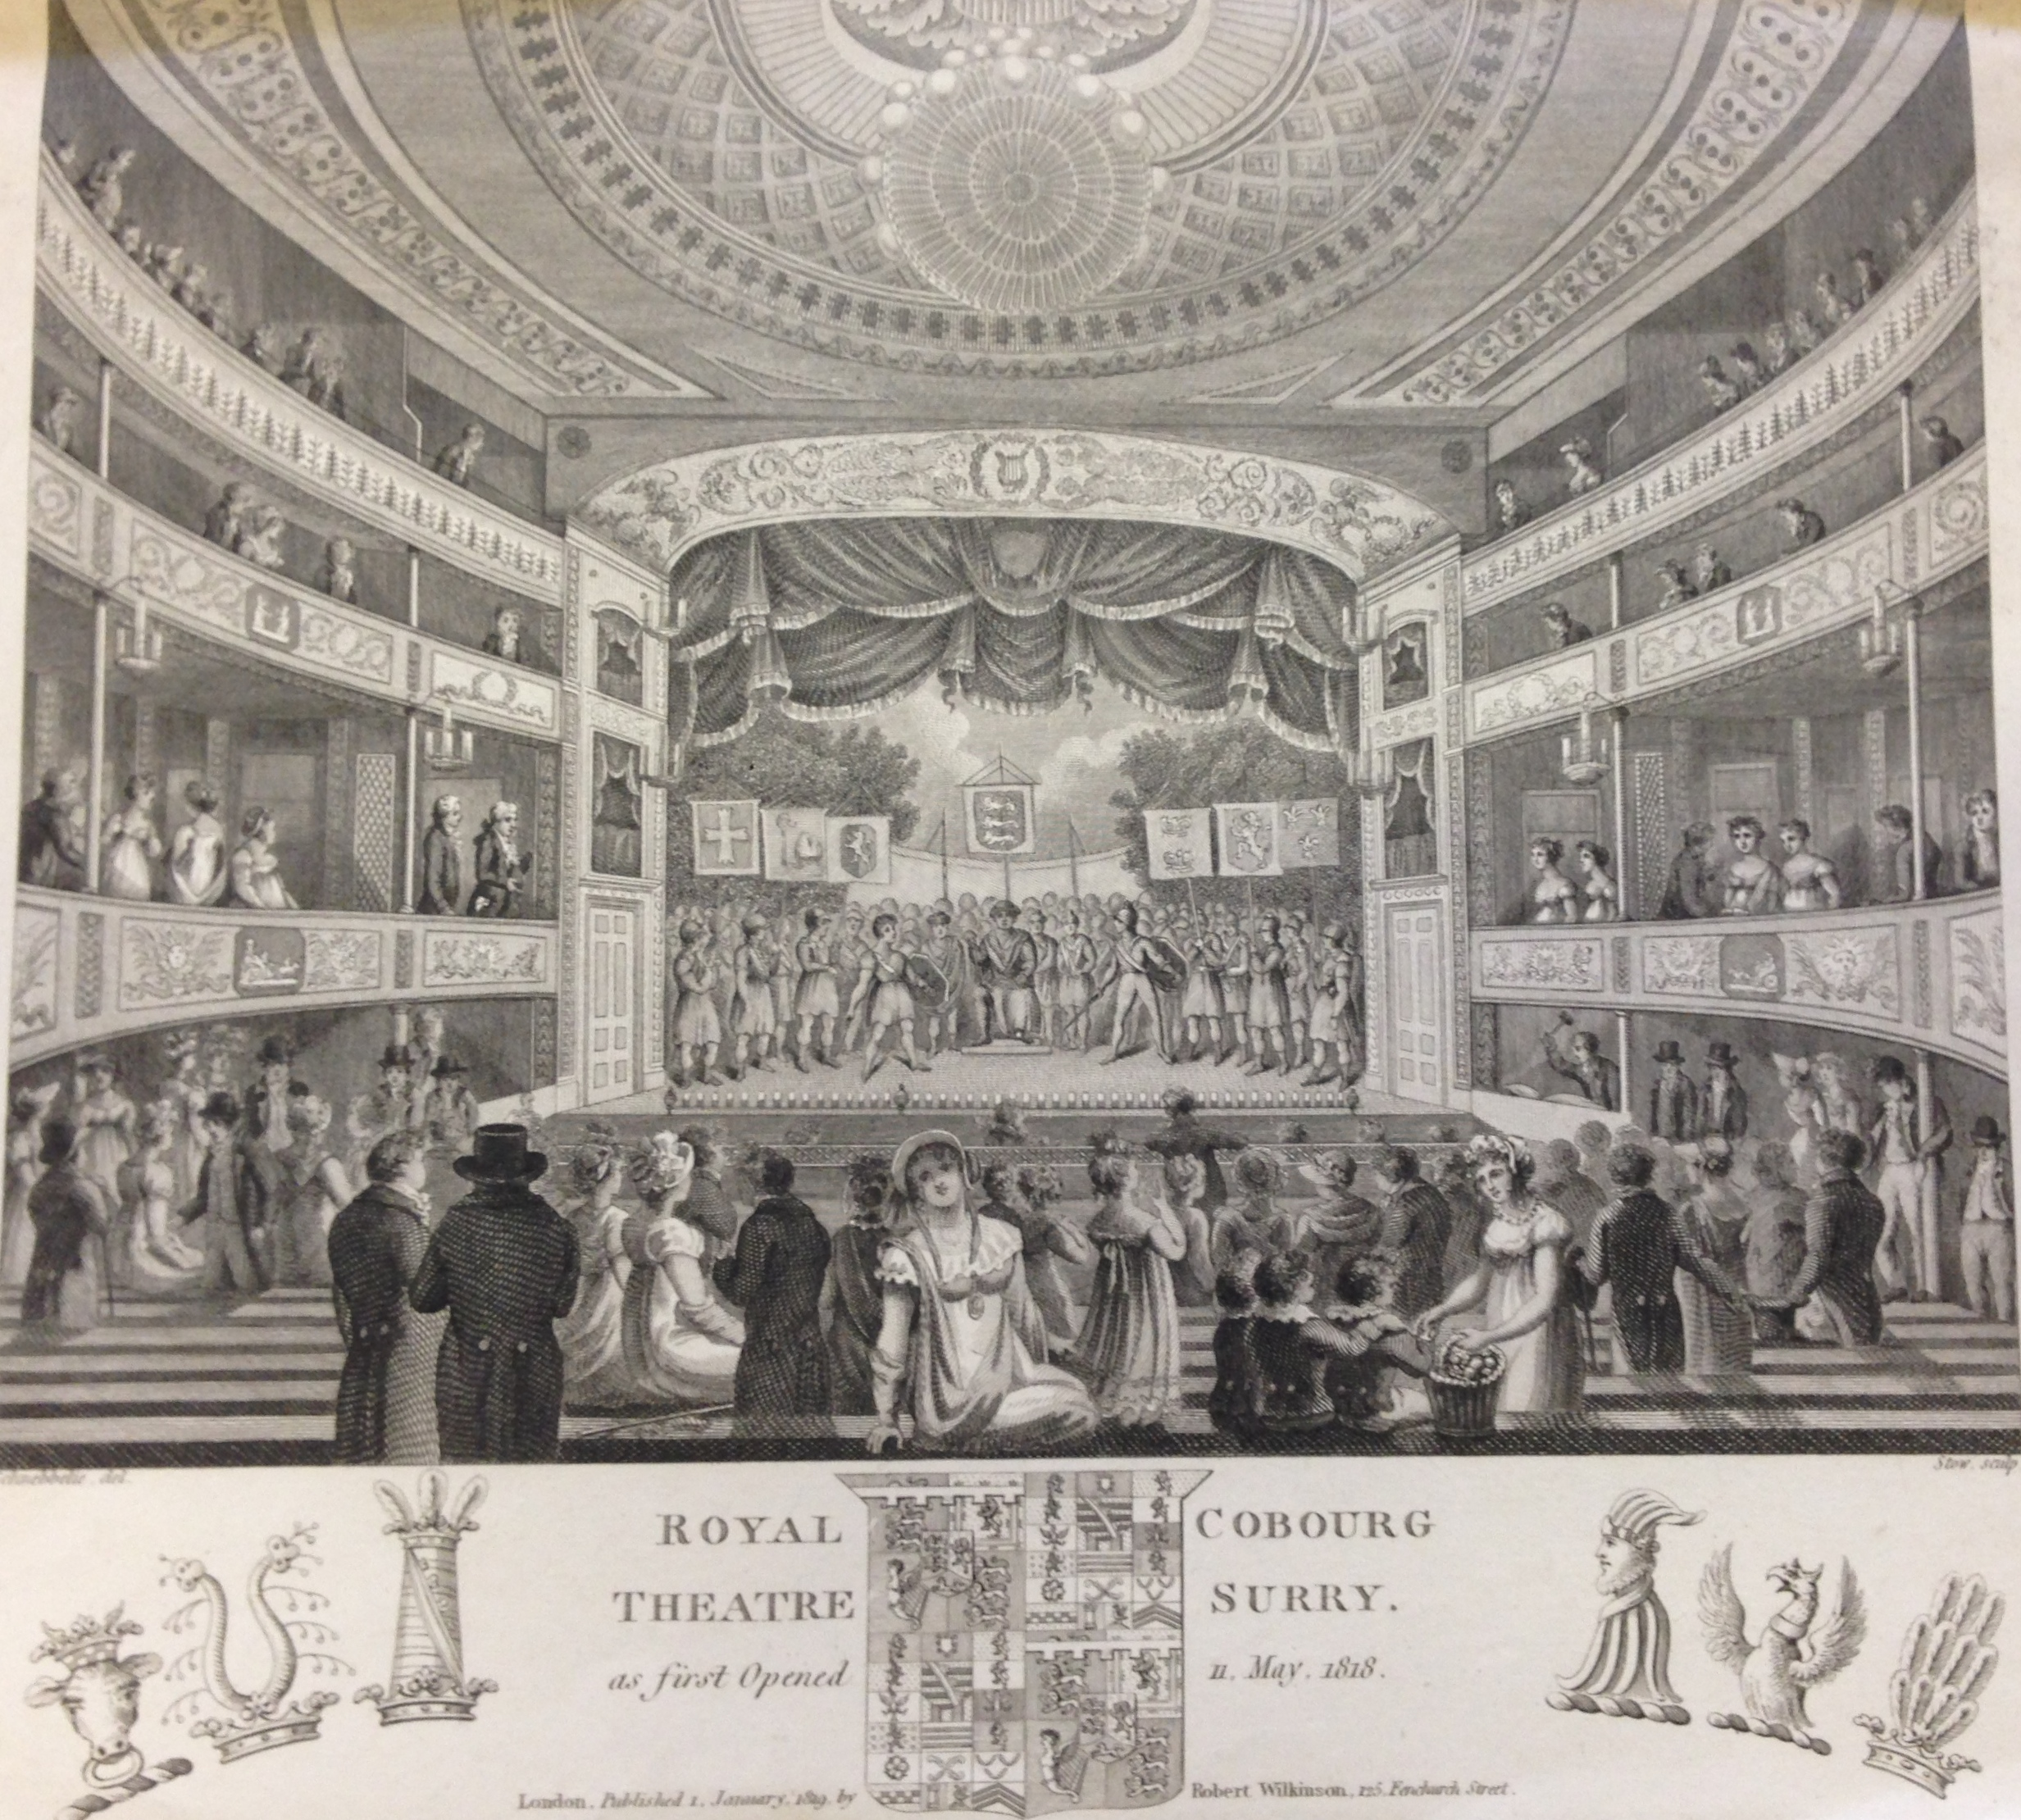 <b>Interior of Royal Coburg, 1819</b>     	</br>Interior of the Royal Coburg Theatre (also known as the Old Vic), London, 1819.</br><br/><b>Source: </b><i>Used with permission from the University of Bristol Theatre Collection.</i>